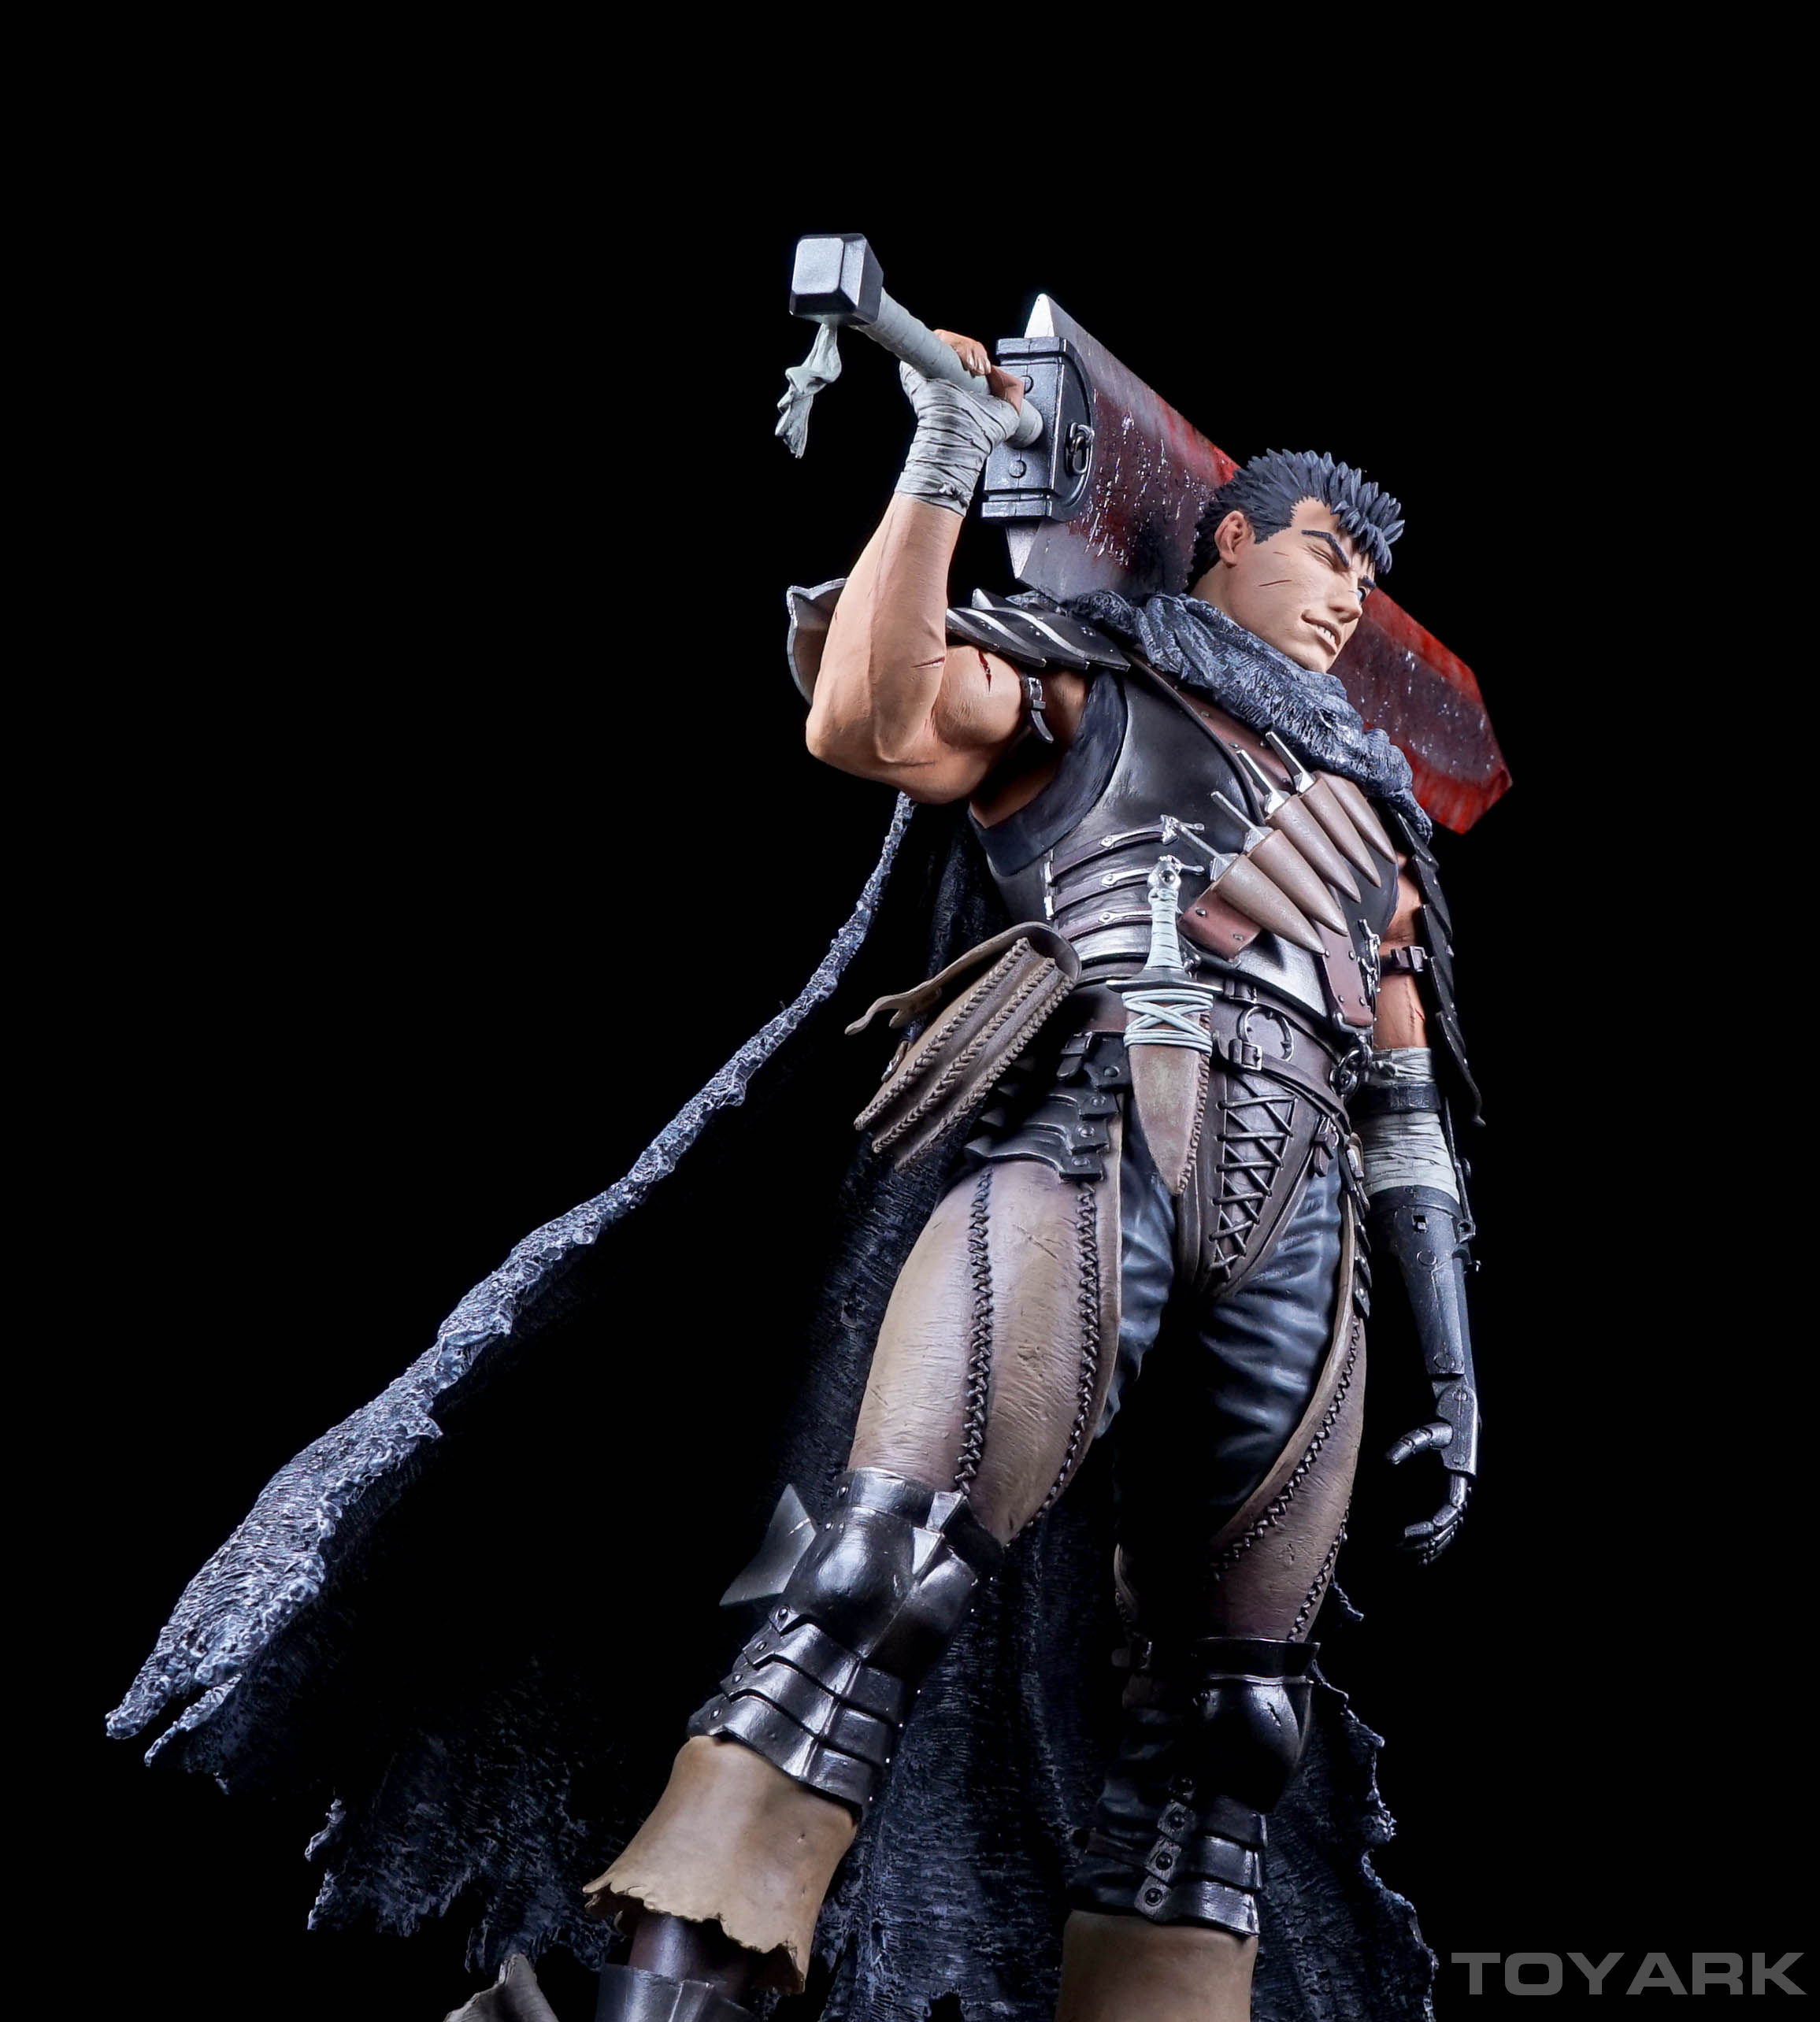 http://news.toyark.com/wp-content/uploads/sites/4/2015/11/Berserk-Guts-Statue-051.jpg